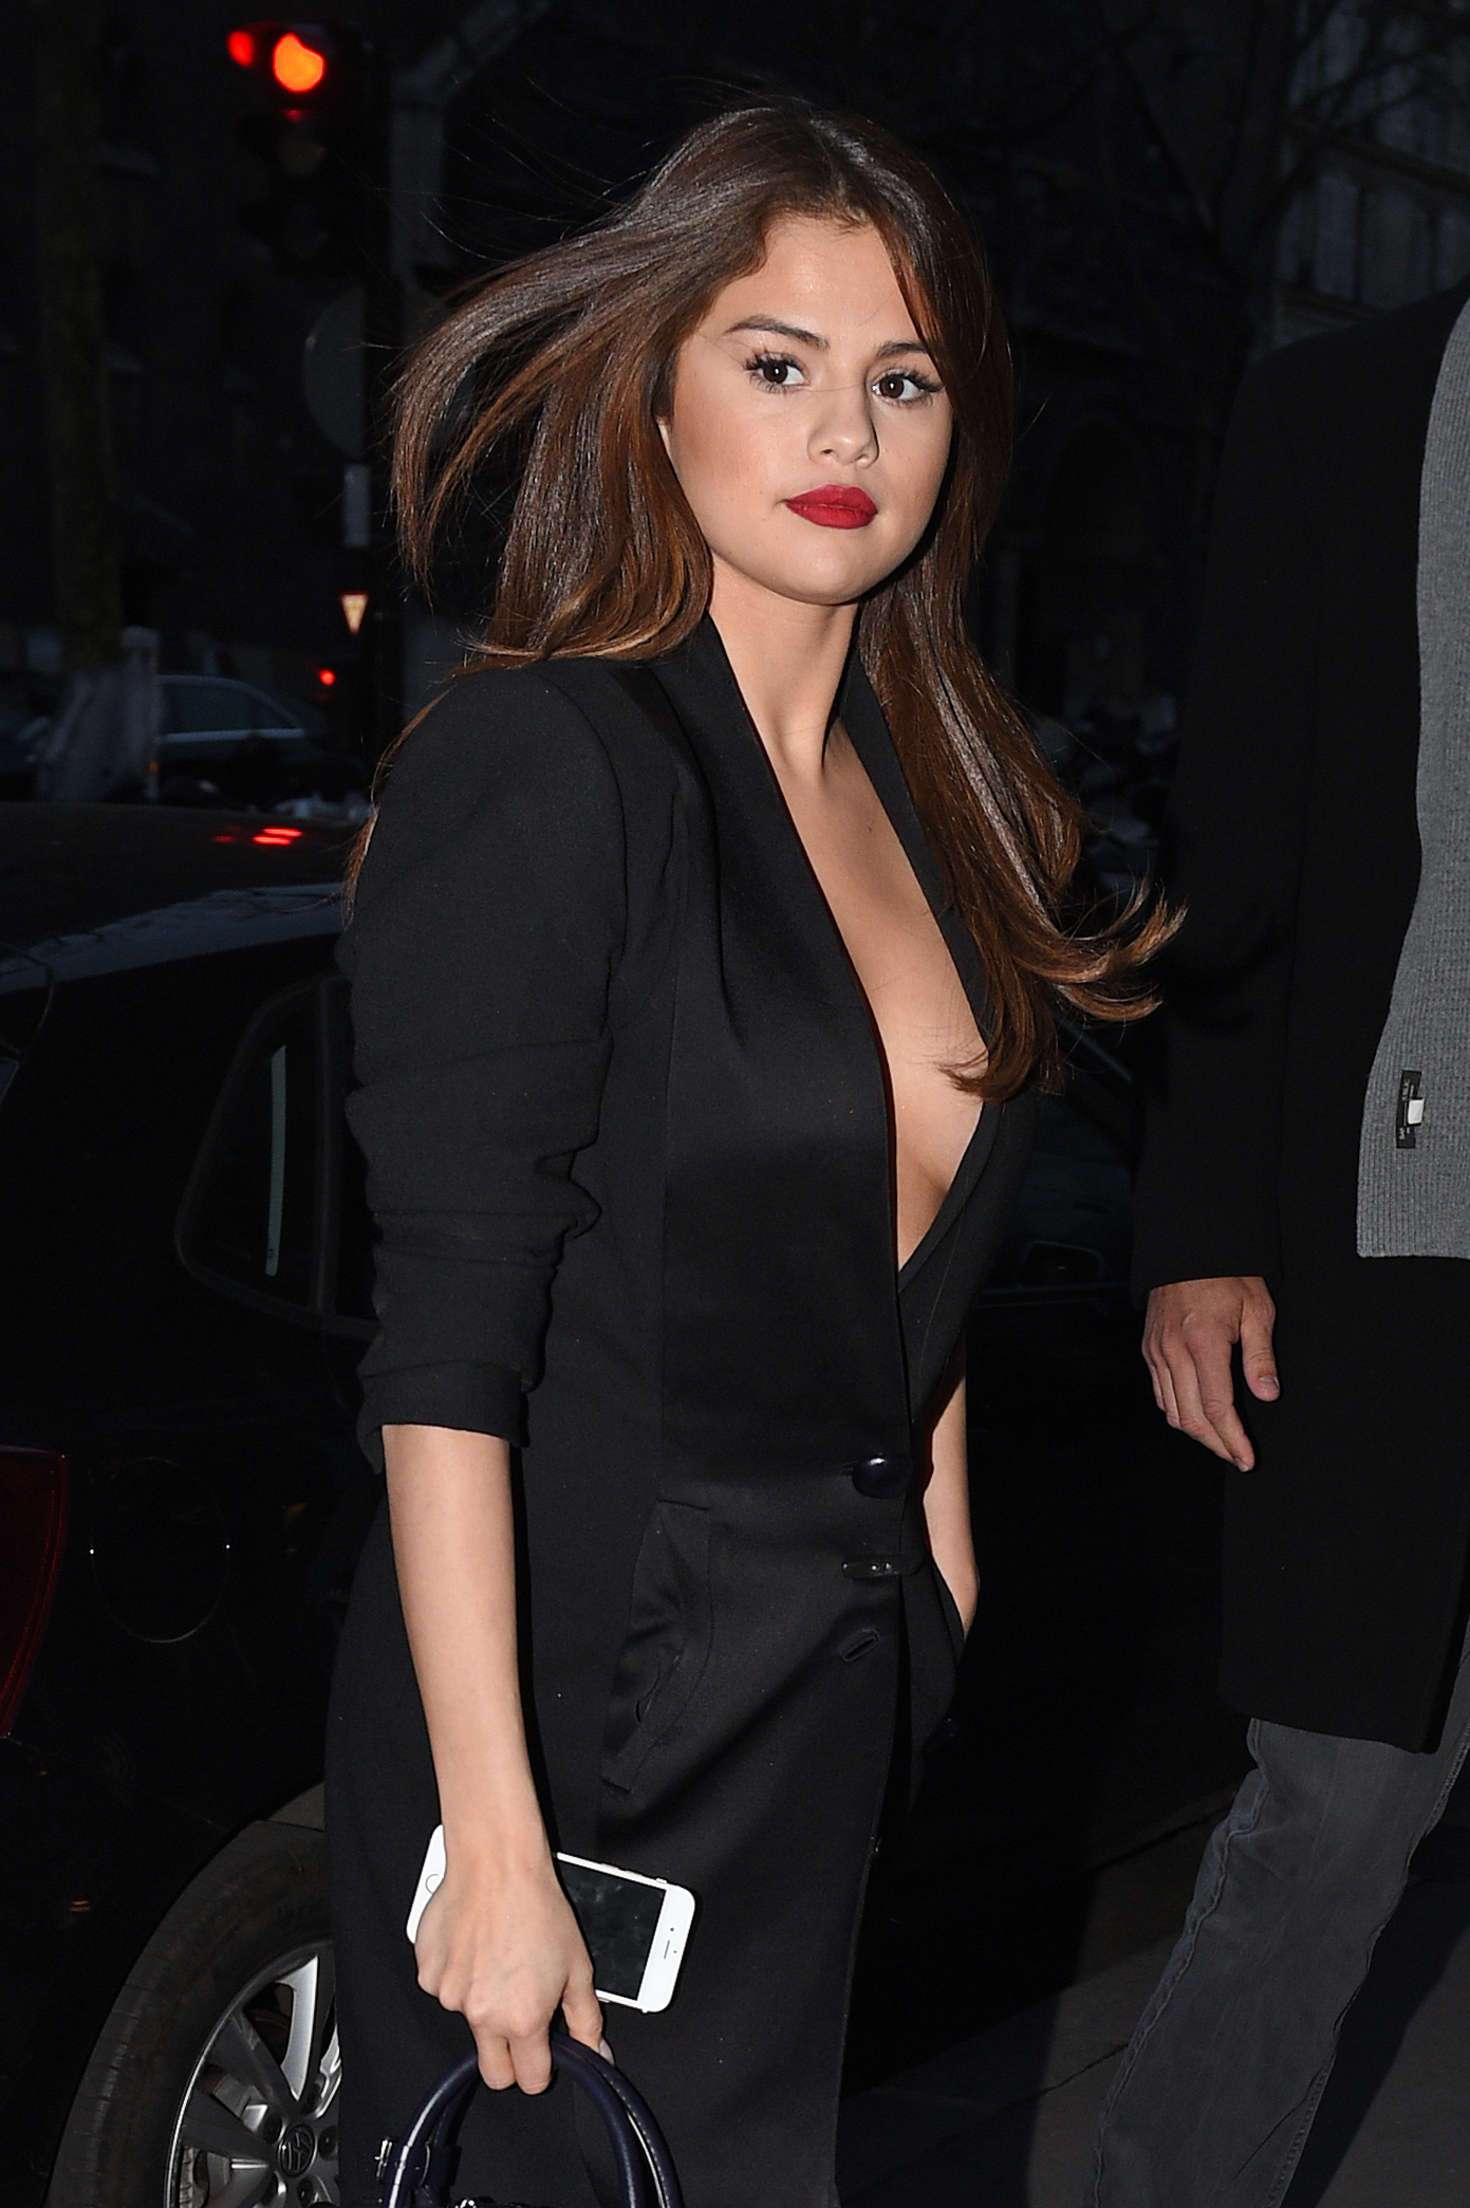 Selena Gomez in Black Dress Leaving Hotel in Paris